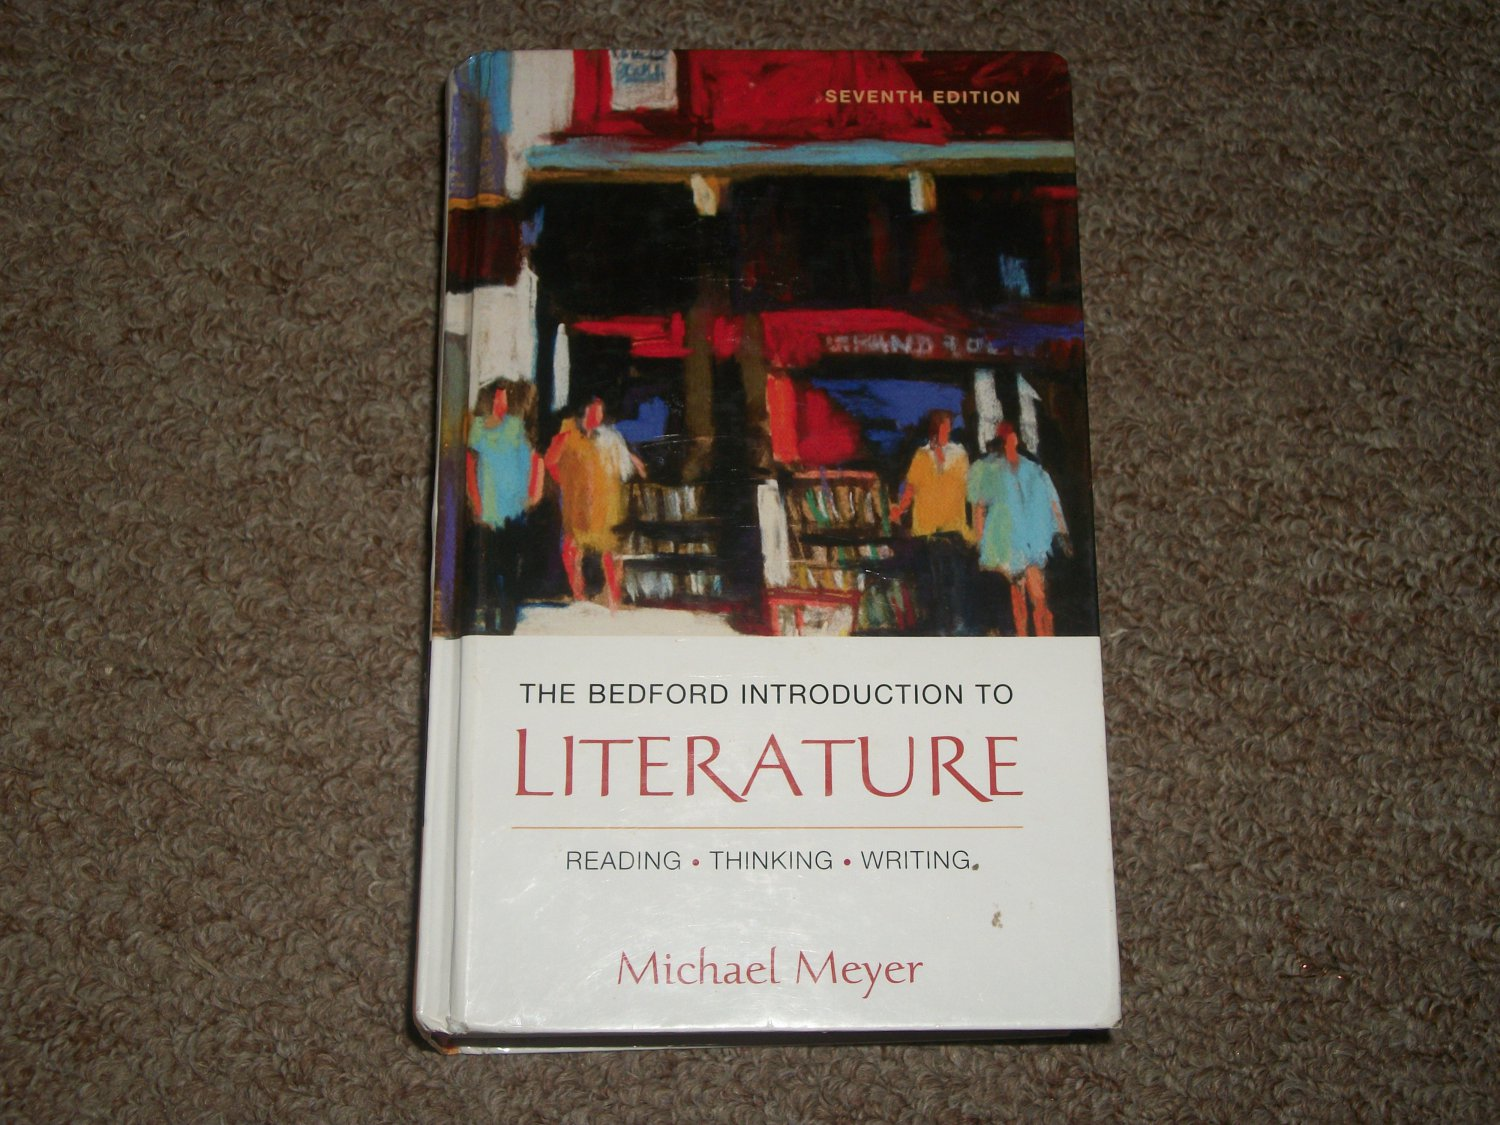 The Bedford Introduction to Literature/Seventh Edition- Michael Meyer